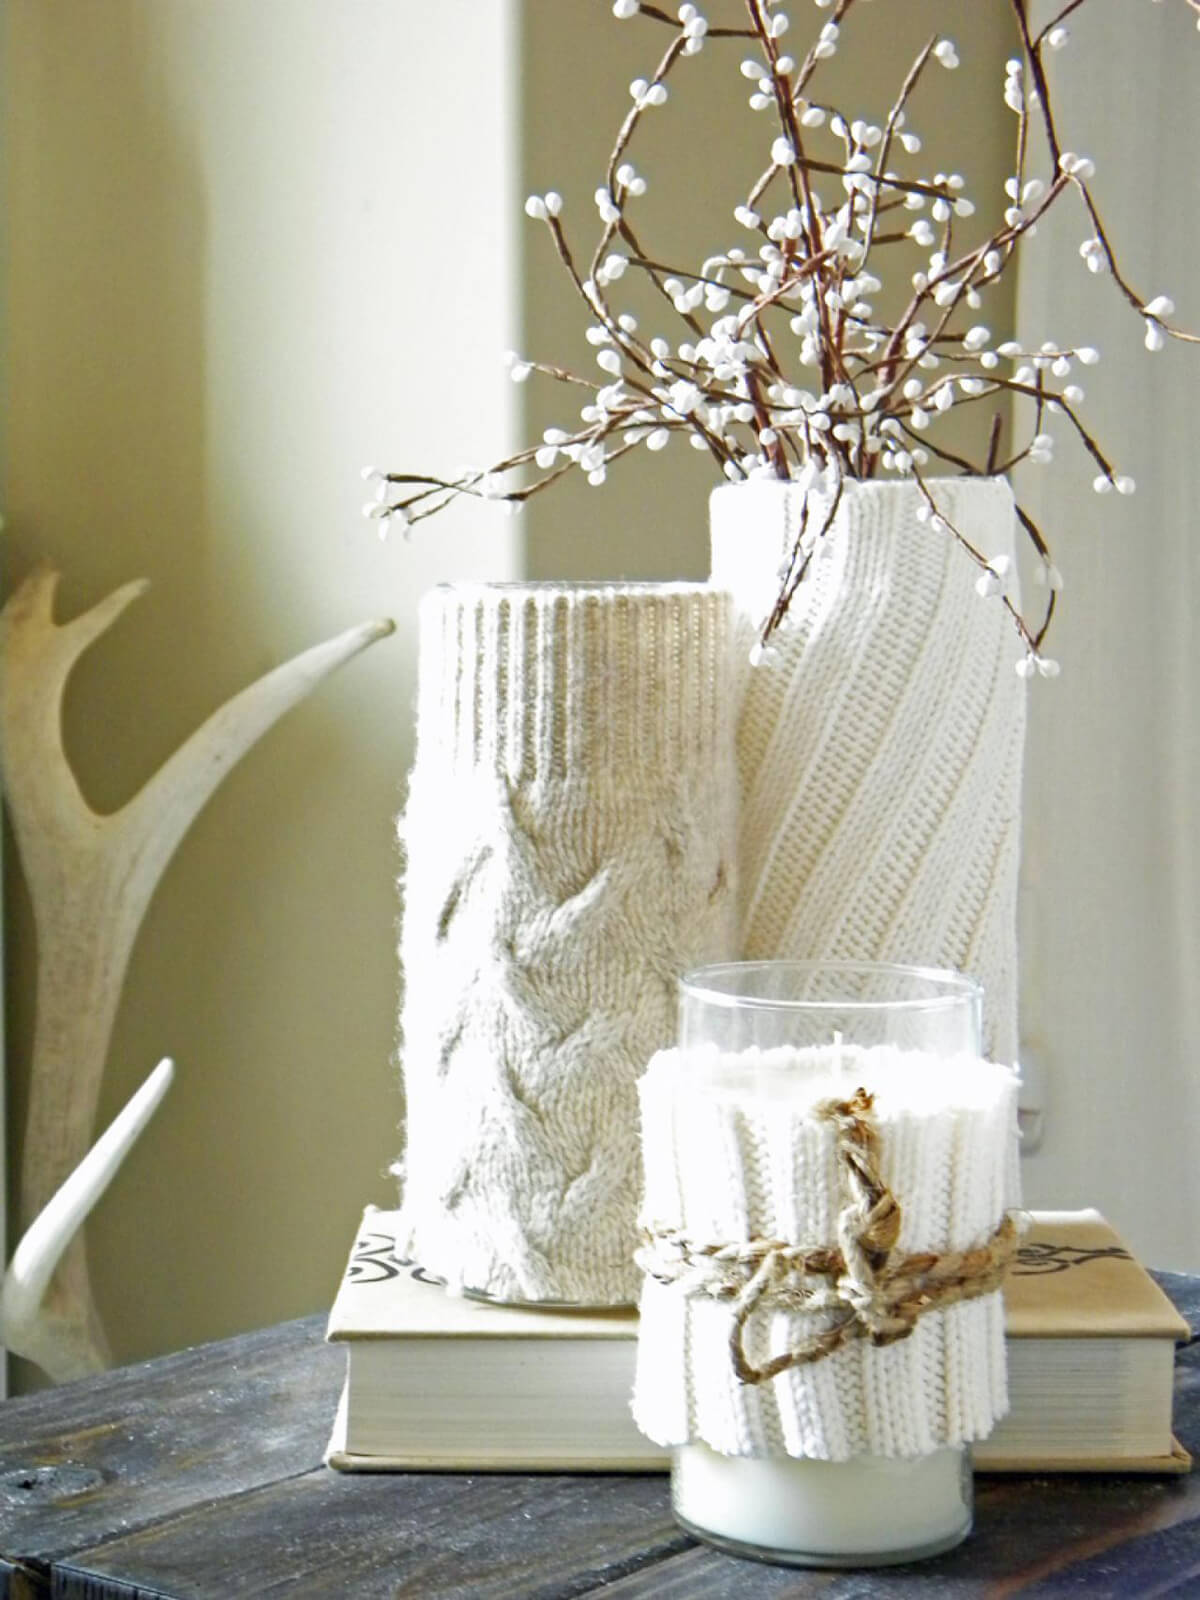 Cozy Sweater Candleholder and Vase